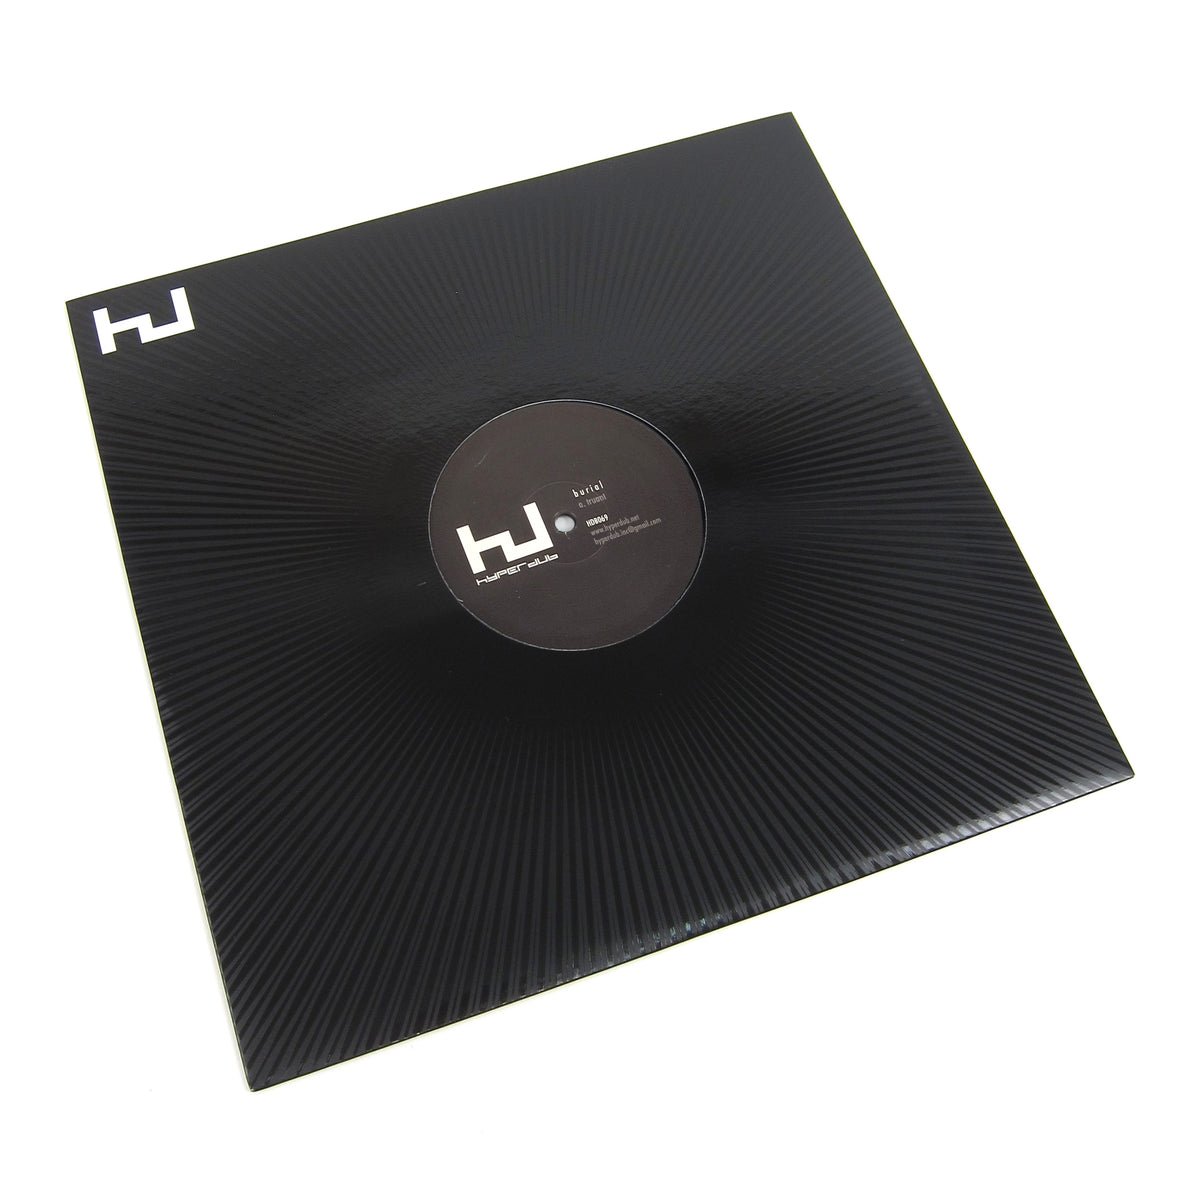 Burial: One/Two (Truant / Rough Sleeper) Vinyl 12""